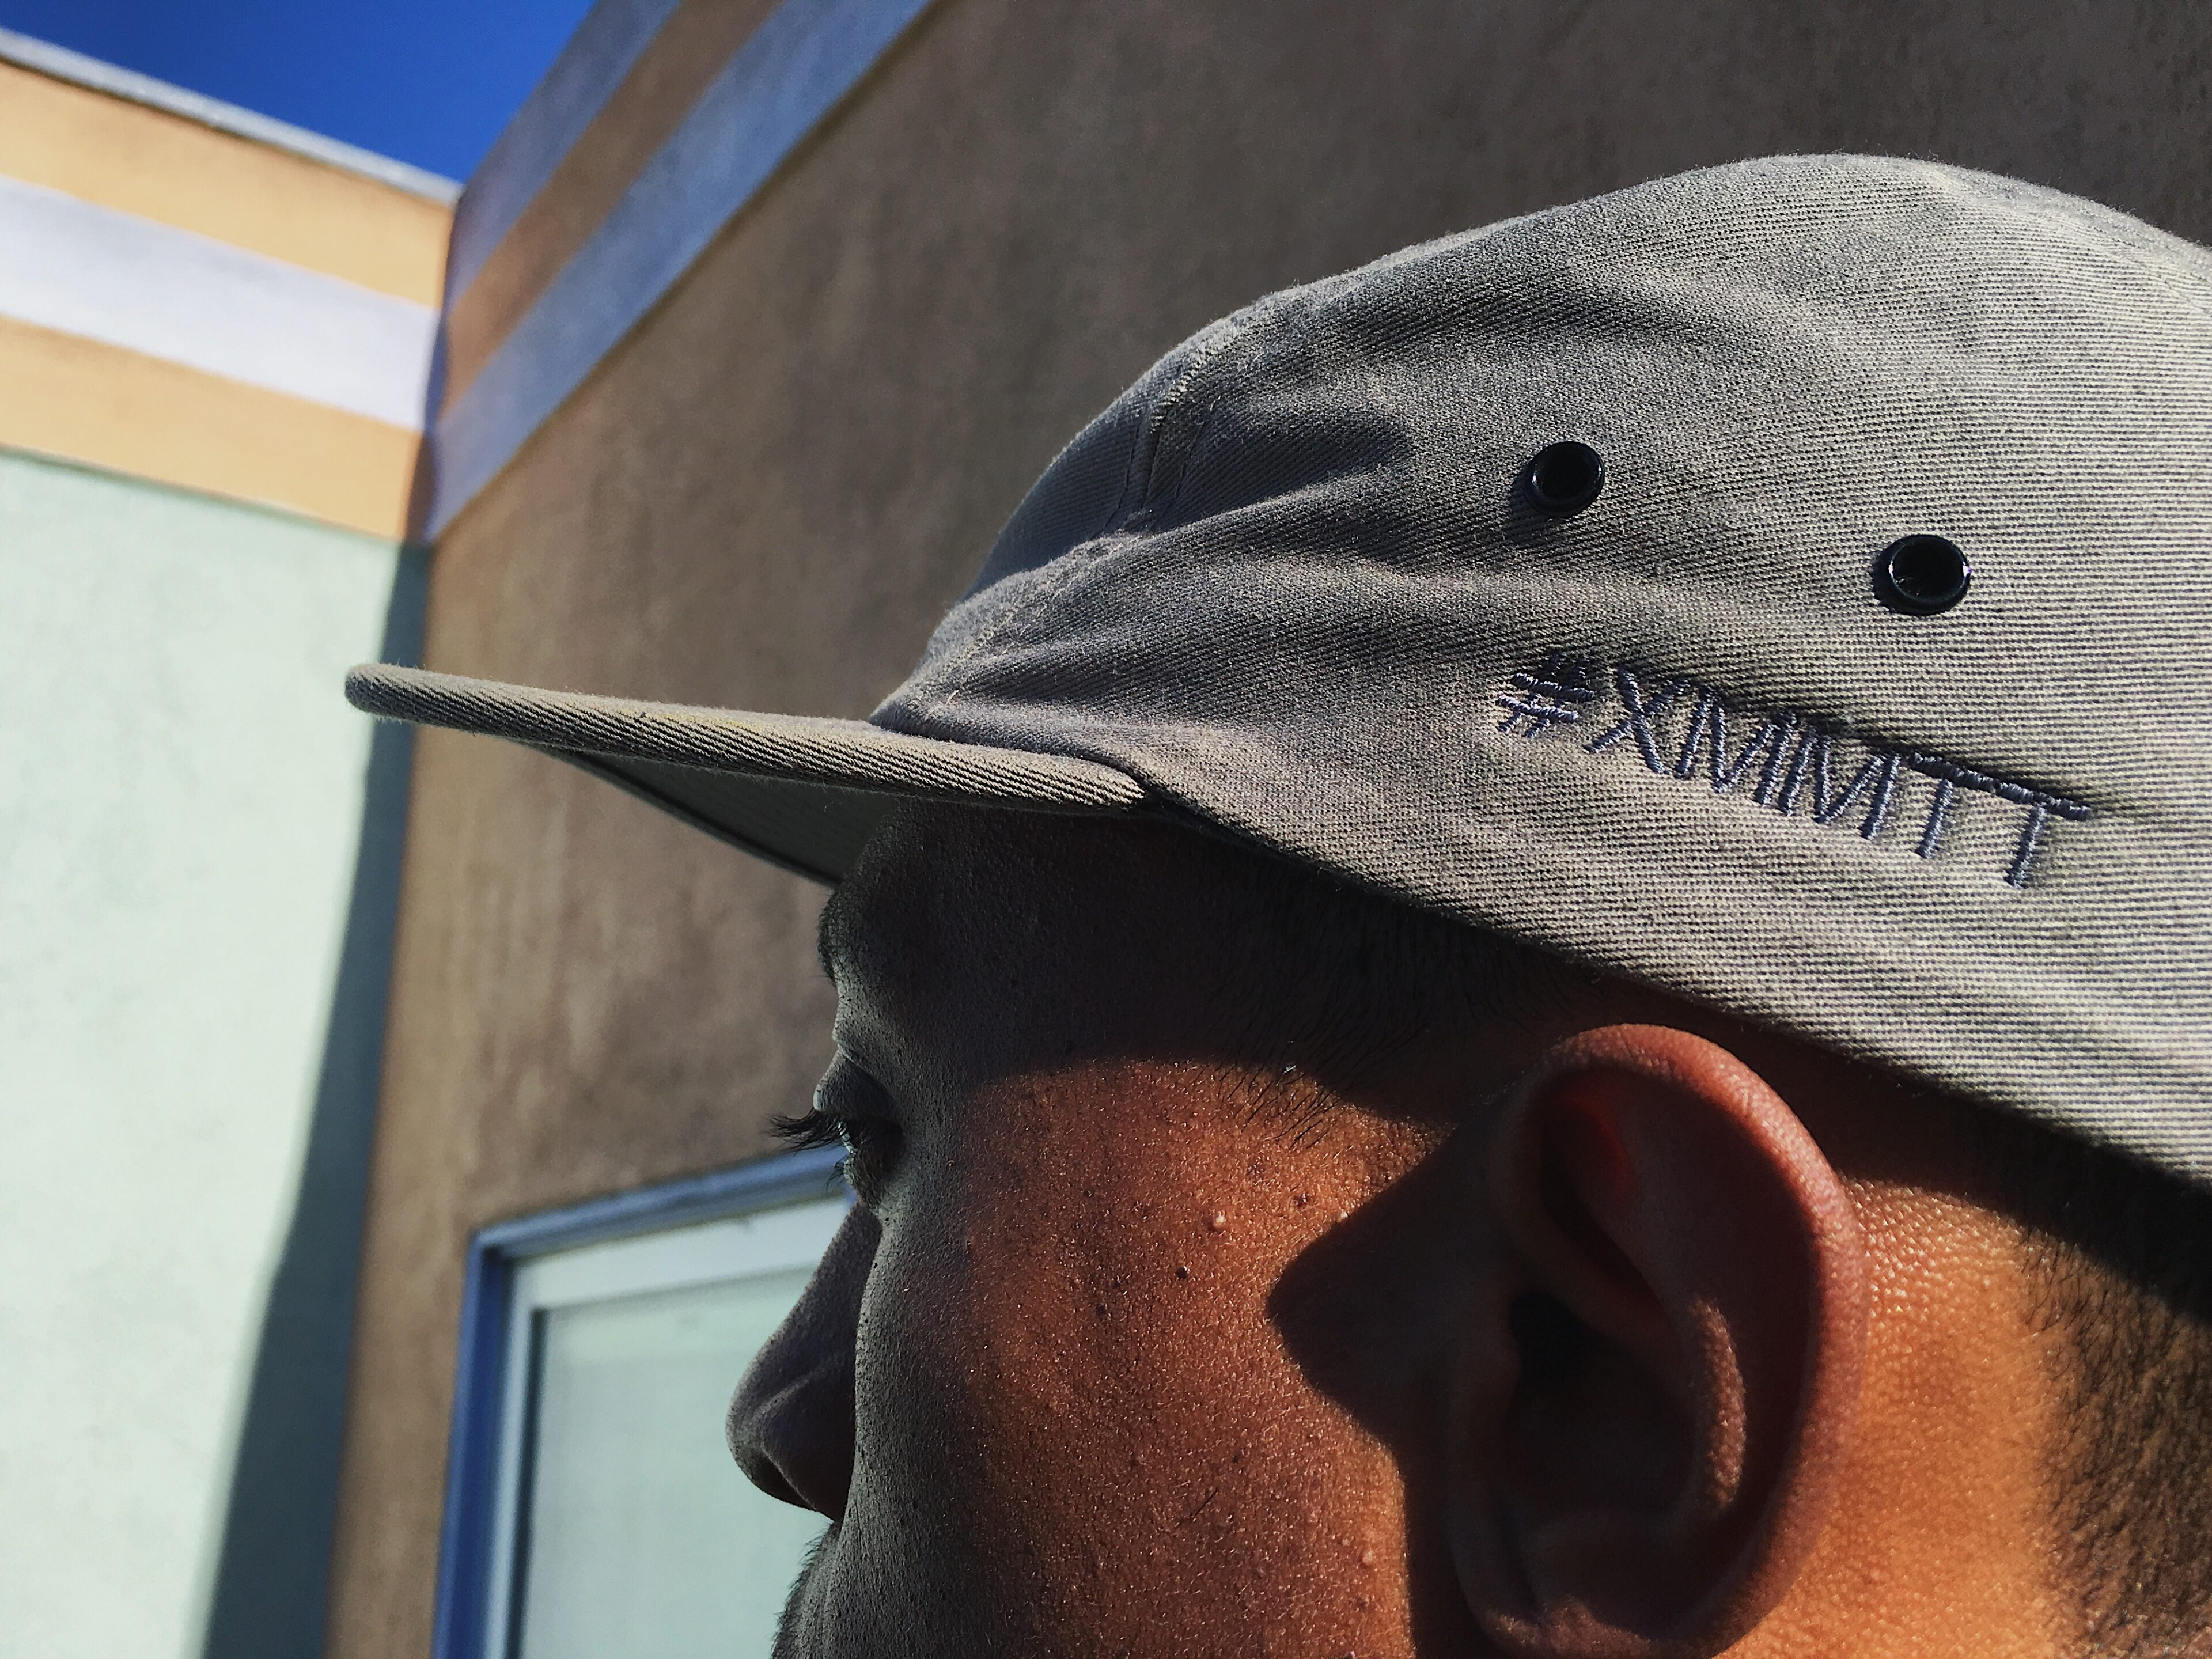 xmmtt-rsee-personalized cap-gifts for him-cap beast